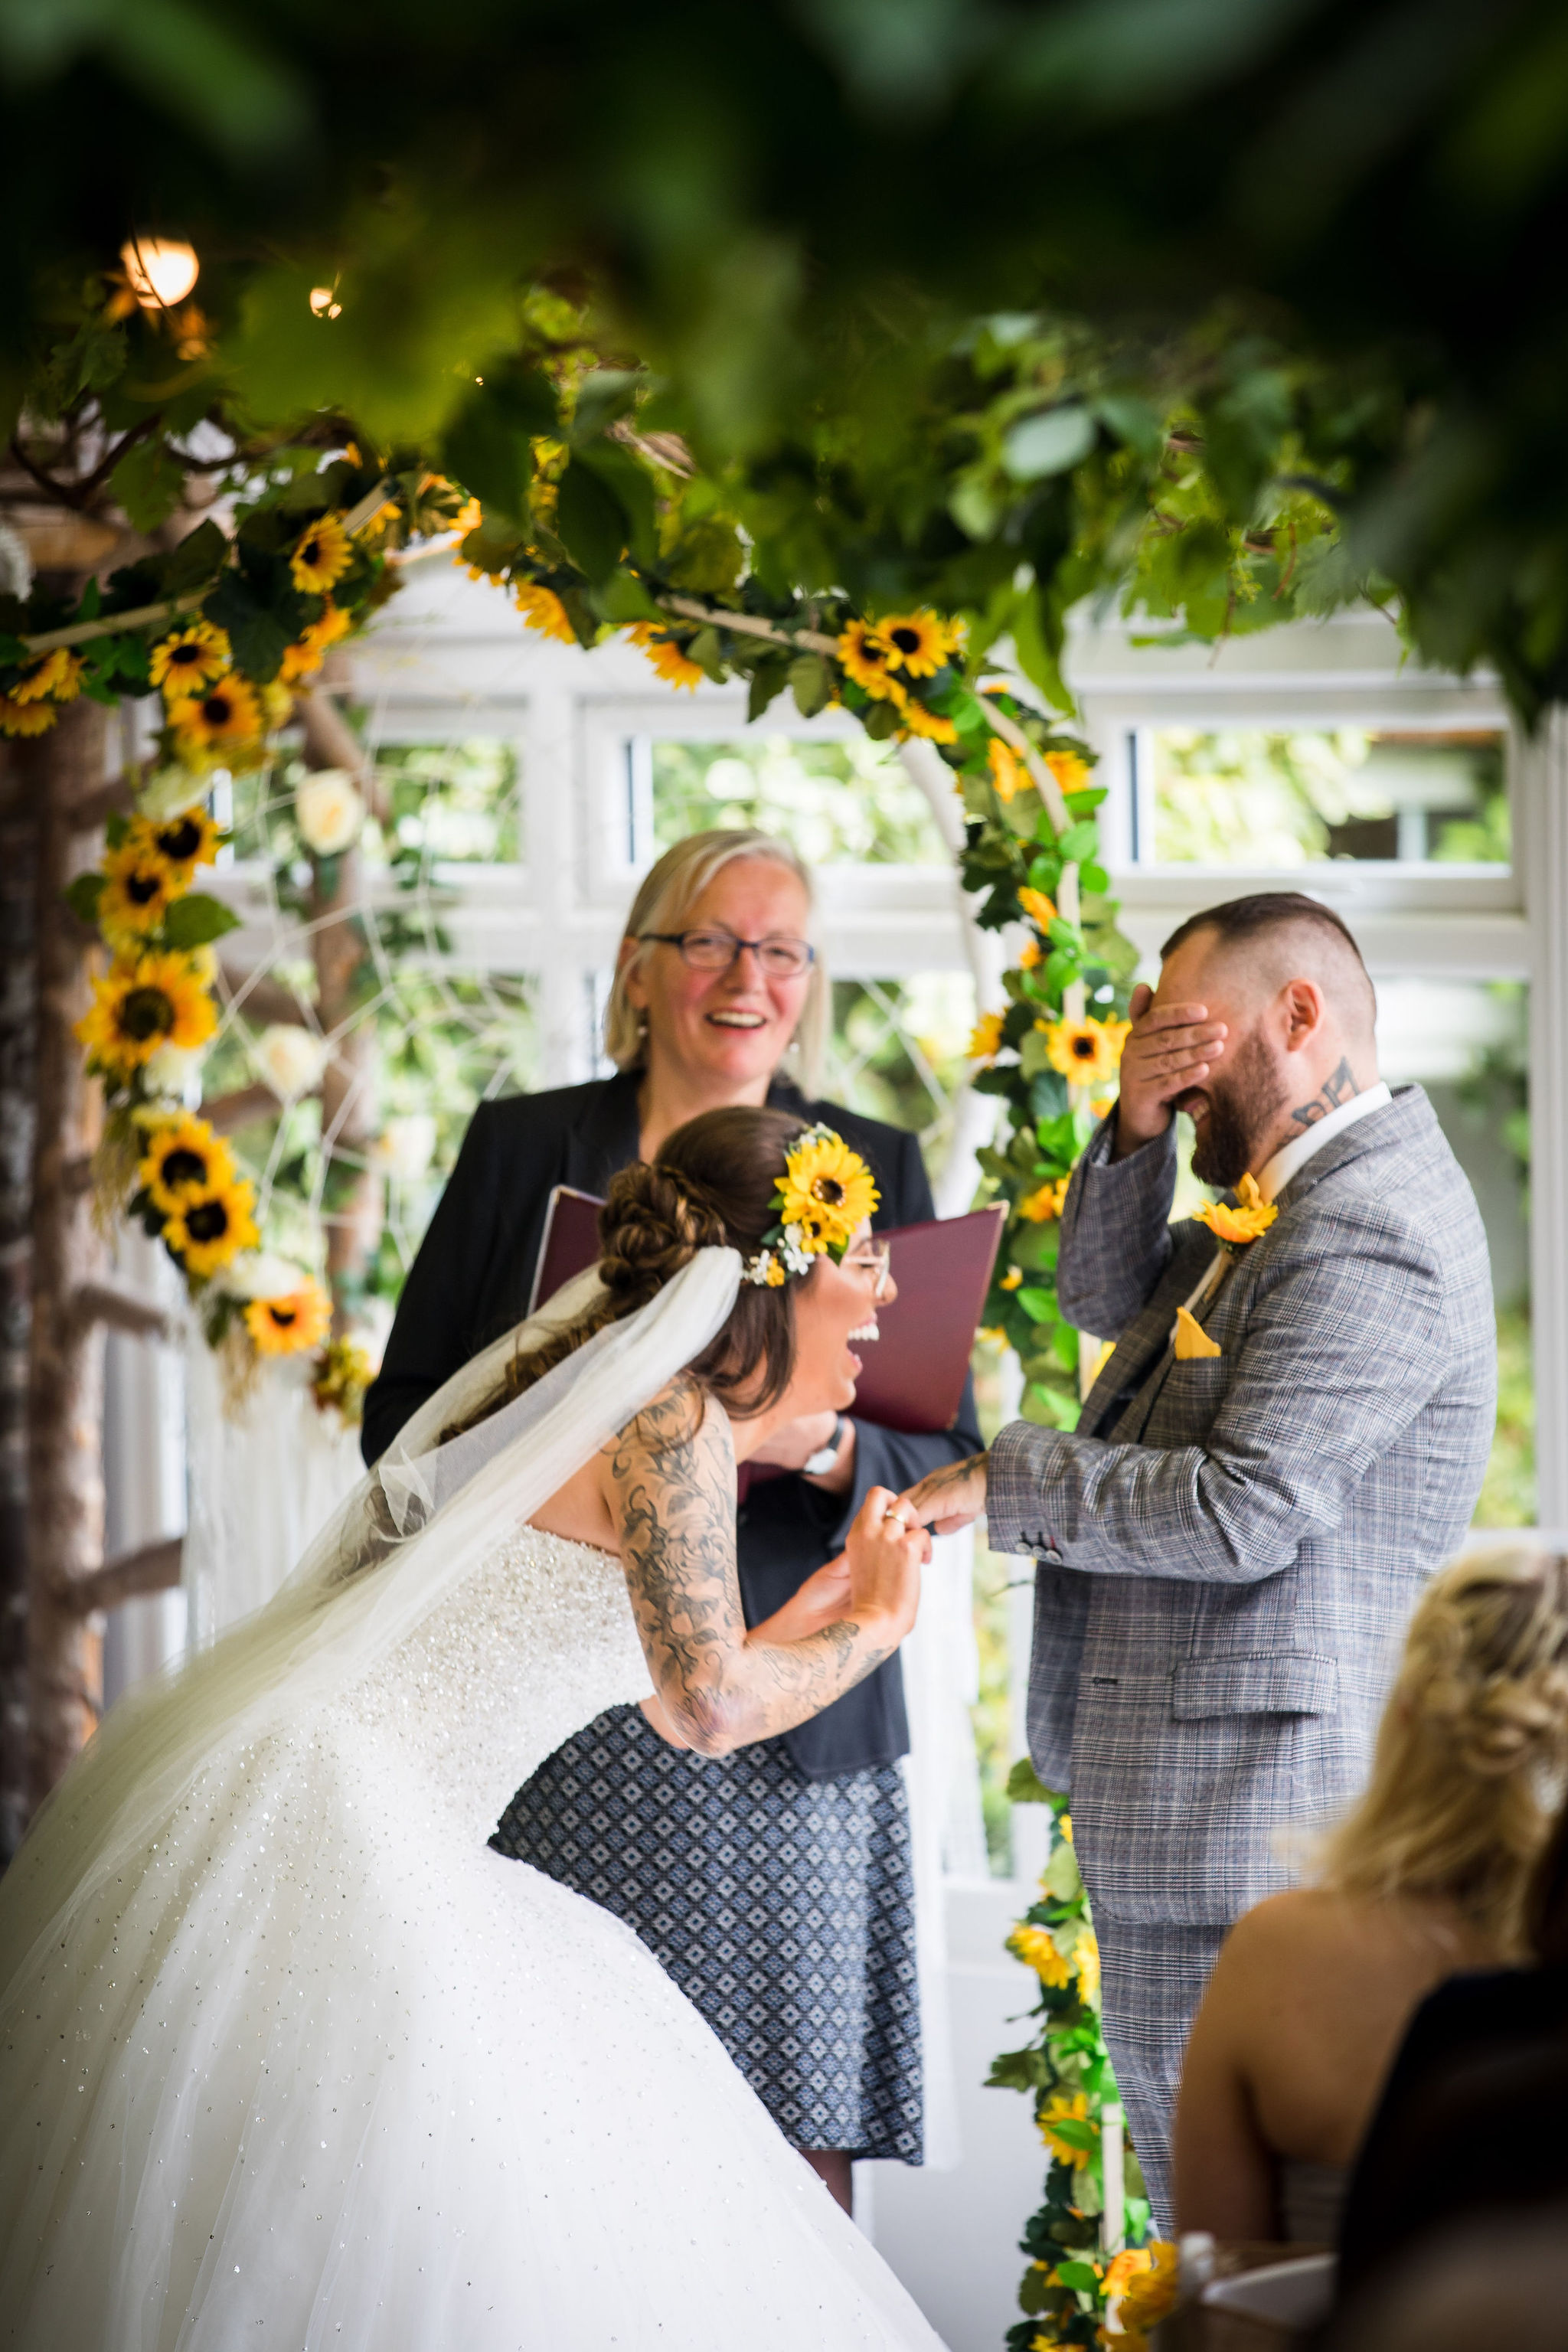 Harriet&Rhys Wedding - Magical sunflower wedding - quirky wedding with dodgems (26)